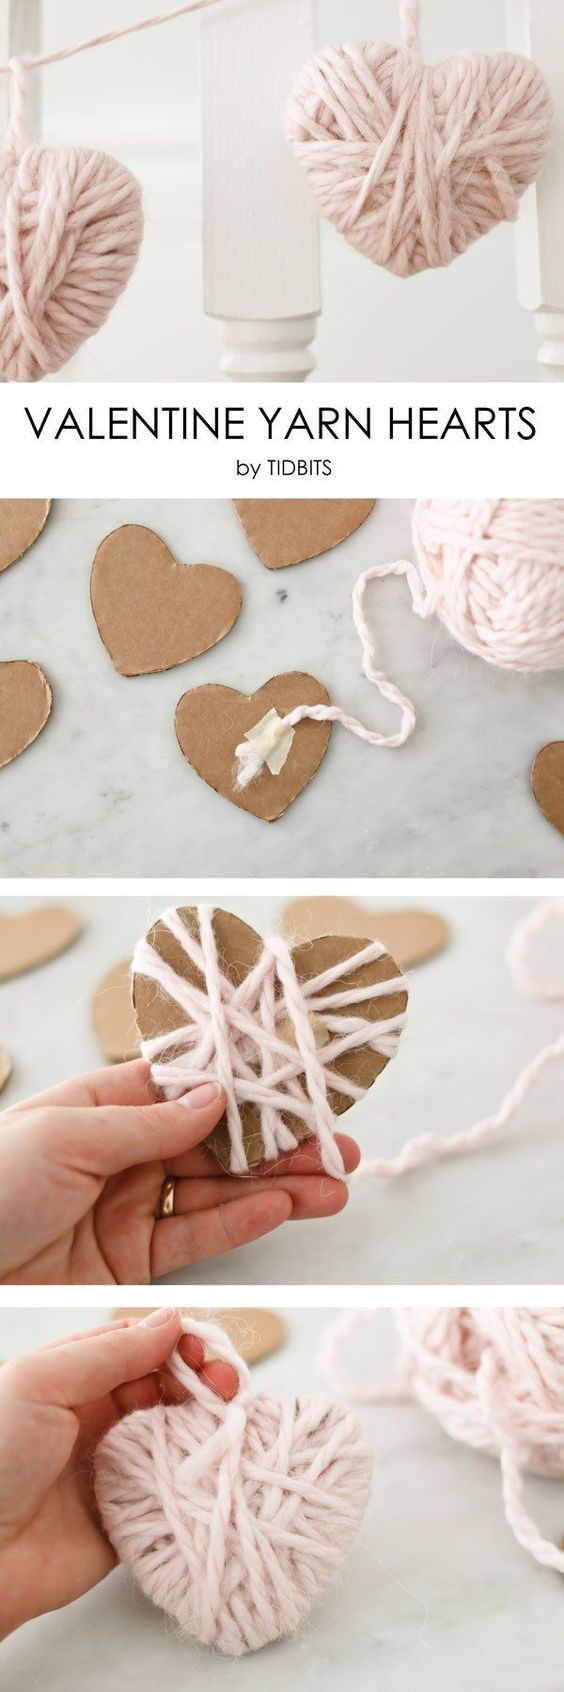 Yarn heart garland